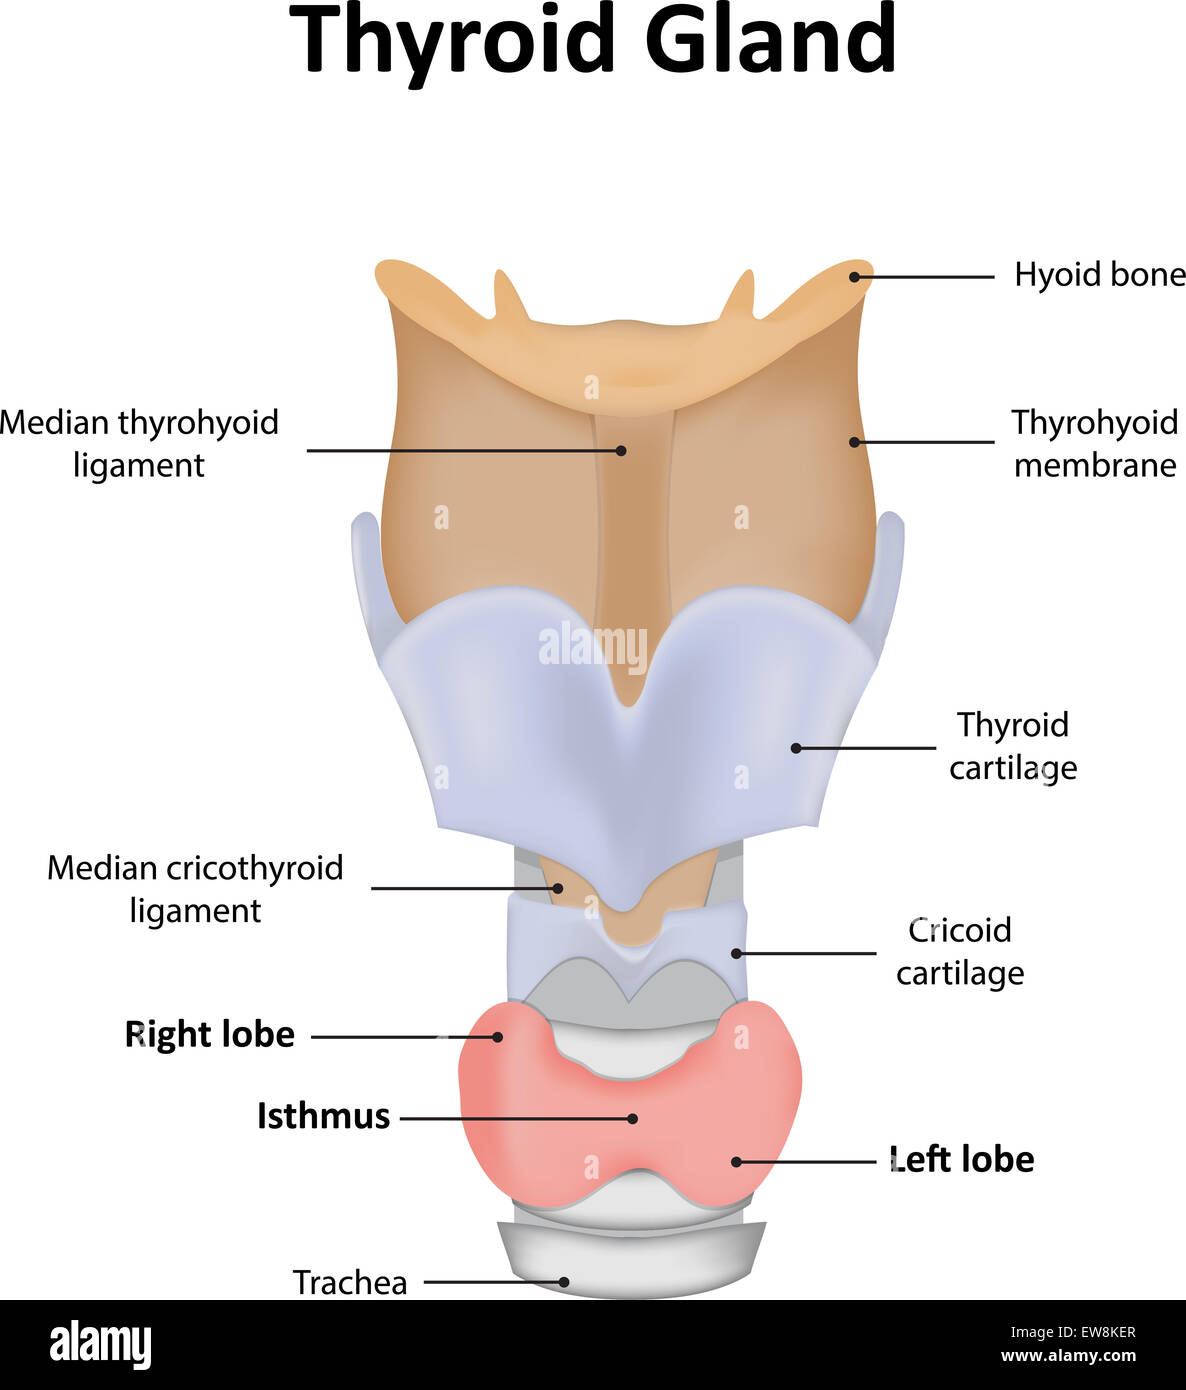 Thyroid Gland Stock Photo Alamy